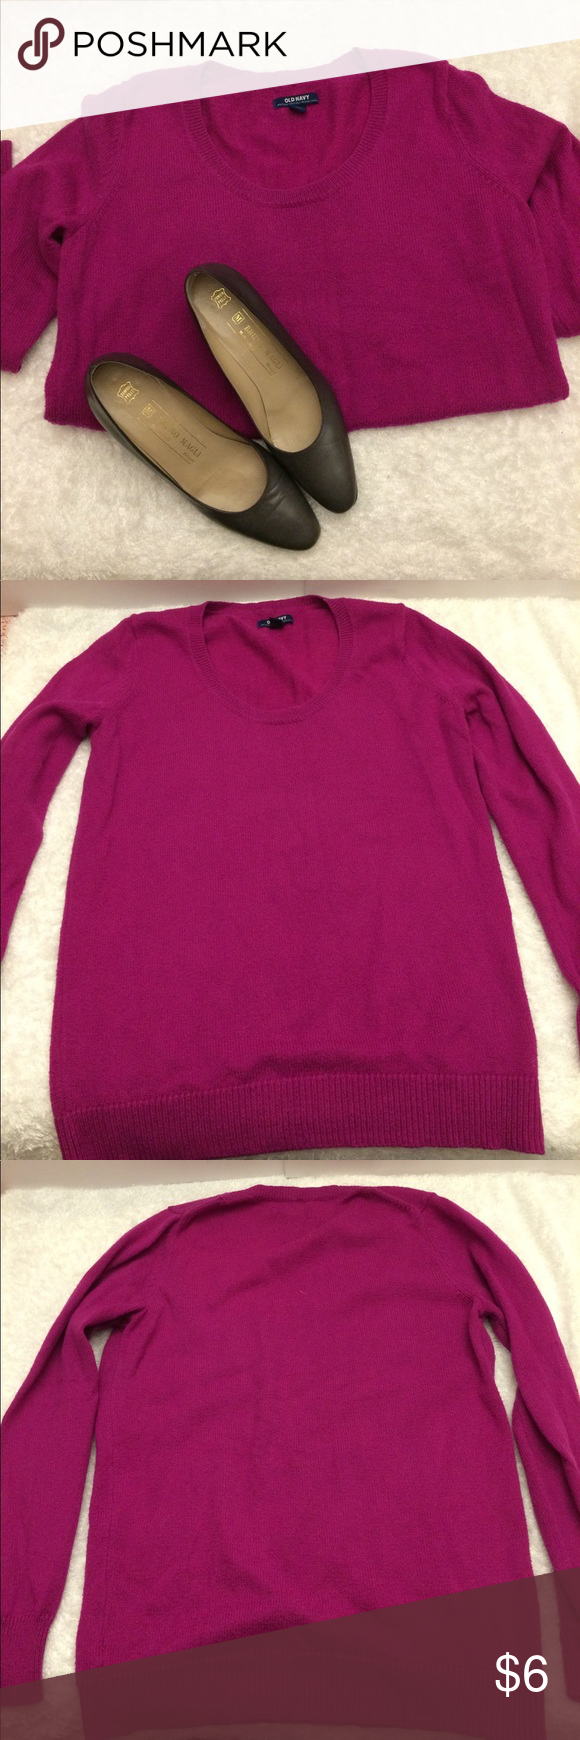 Old Navy purple sweater Bright purple/pink Old Navy sweater size ...